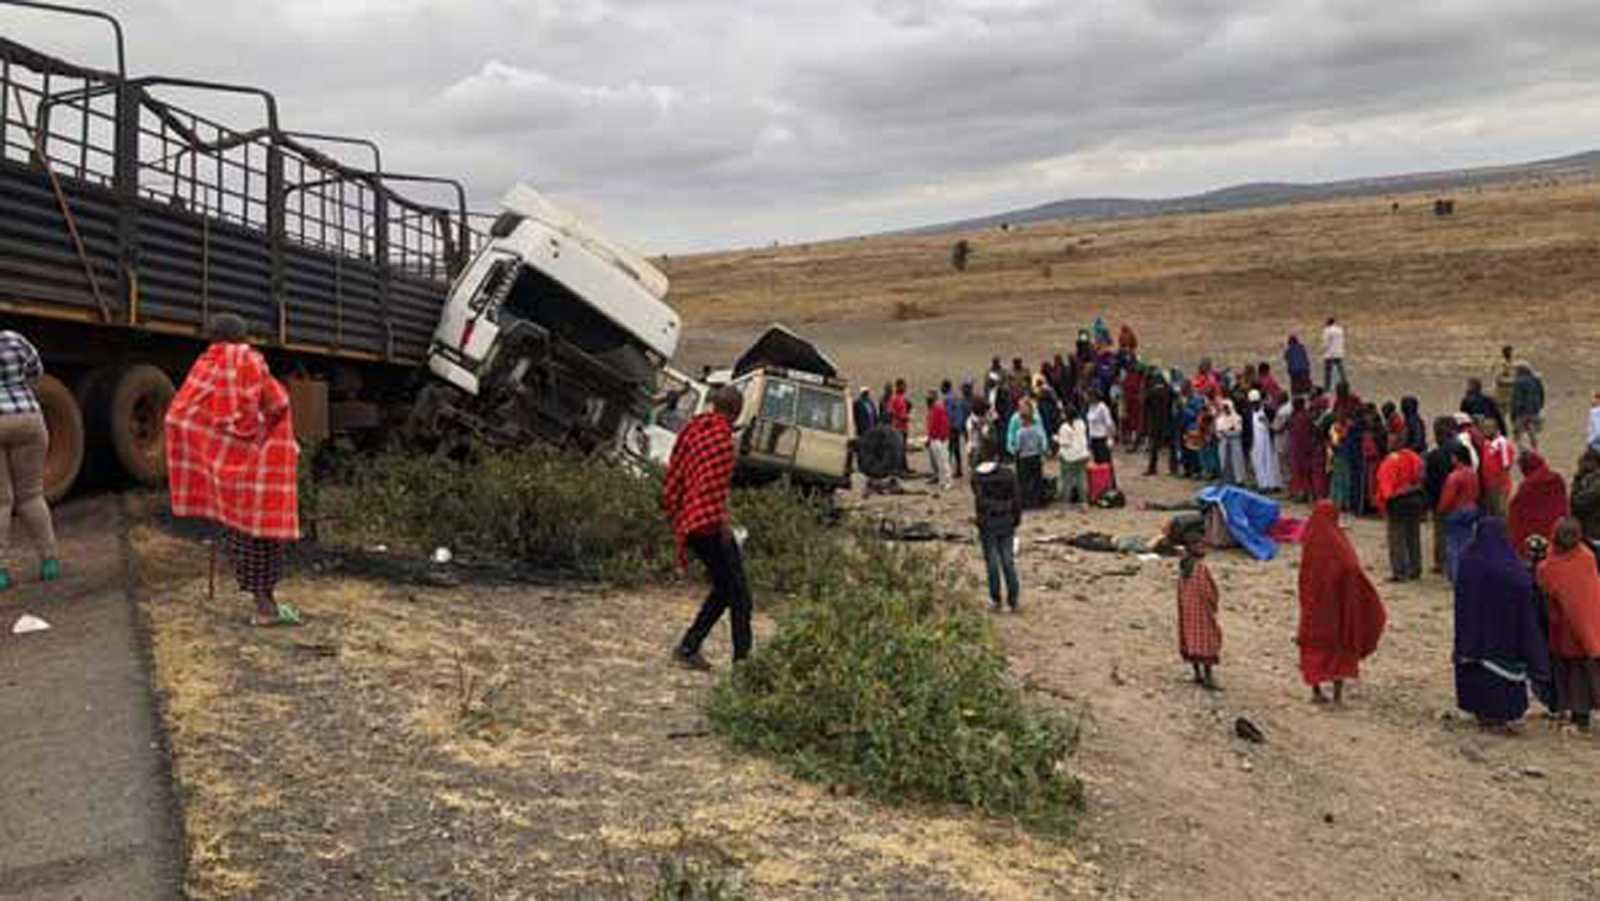 Accidente de tráfico en Tanzania